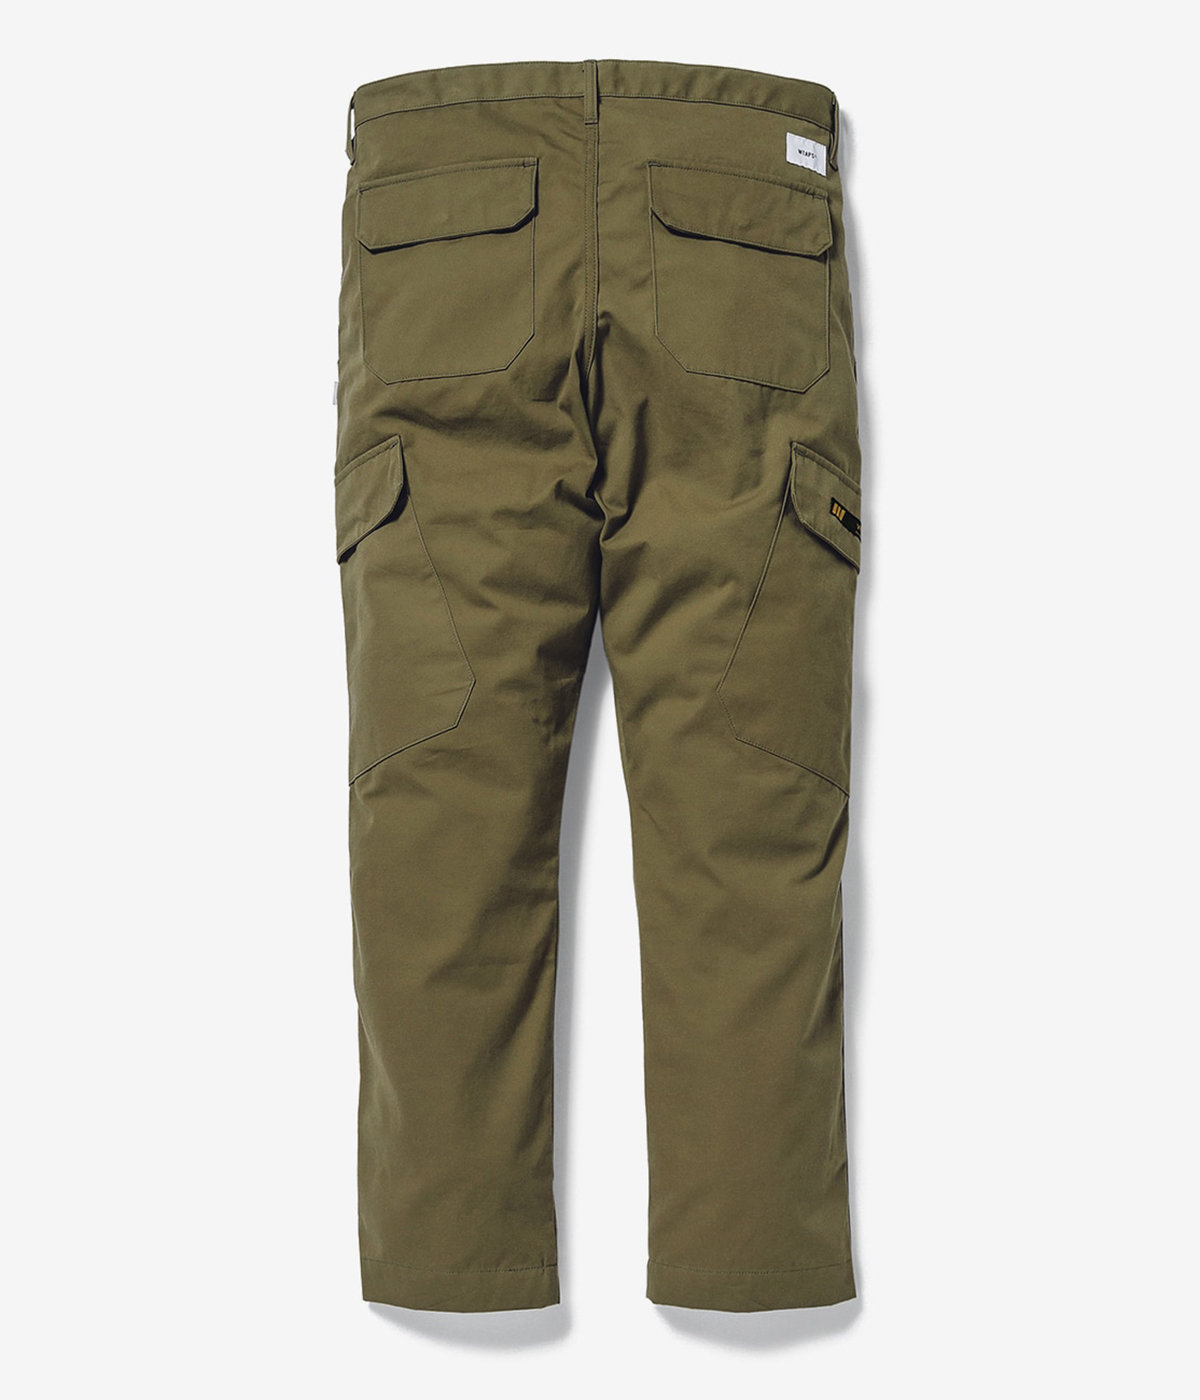 JUNGLE SKINNY / TROUSERS. COTTON. WEATHER